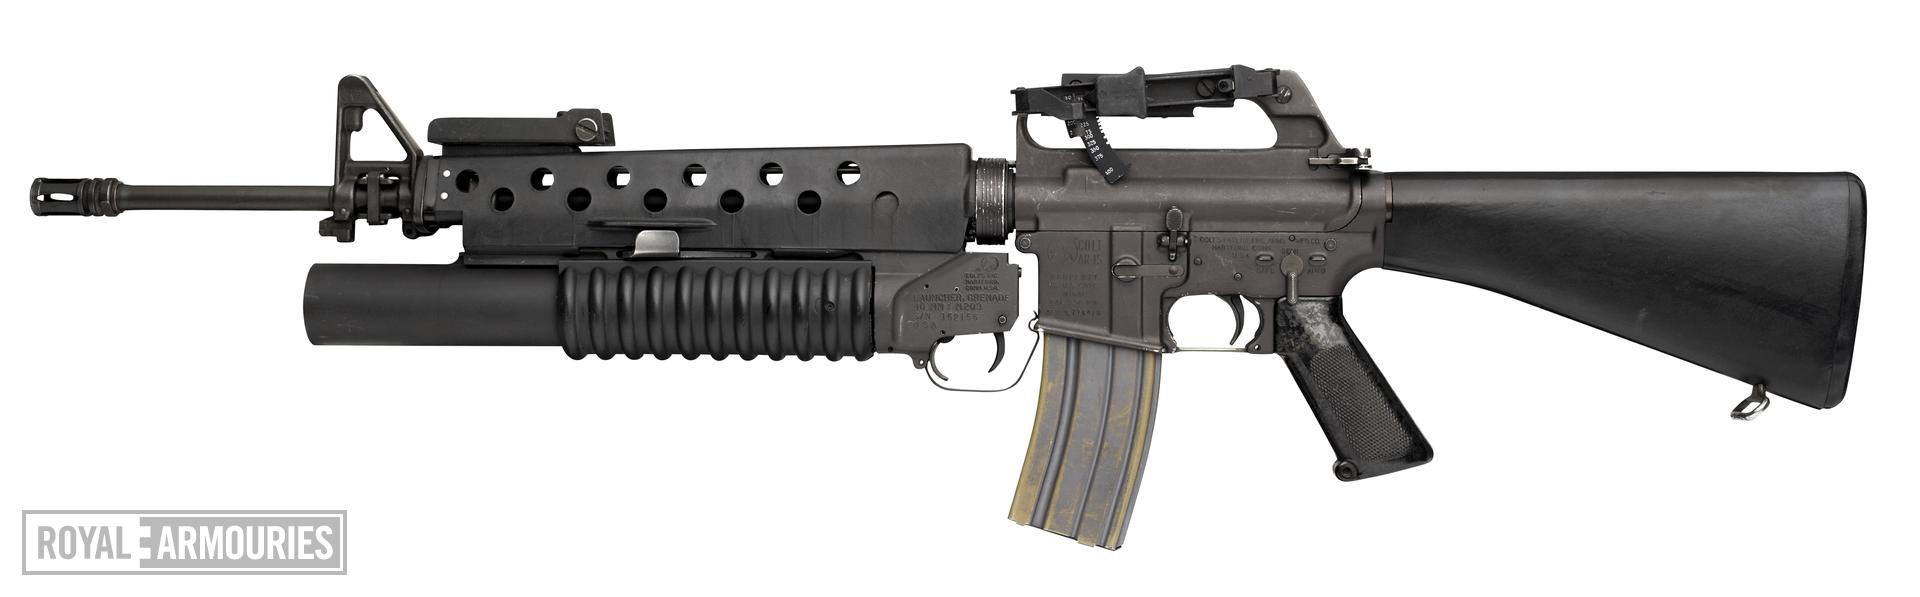 Centrefire automatic rifle - Colt Armalite Model 03 / 603 M16A1 Colt manufactured M16A1 fitted with M203 grenade launcher.